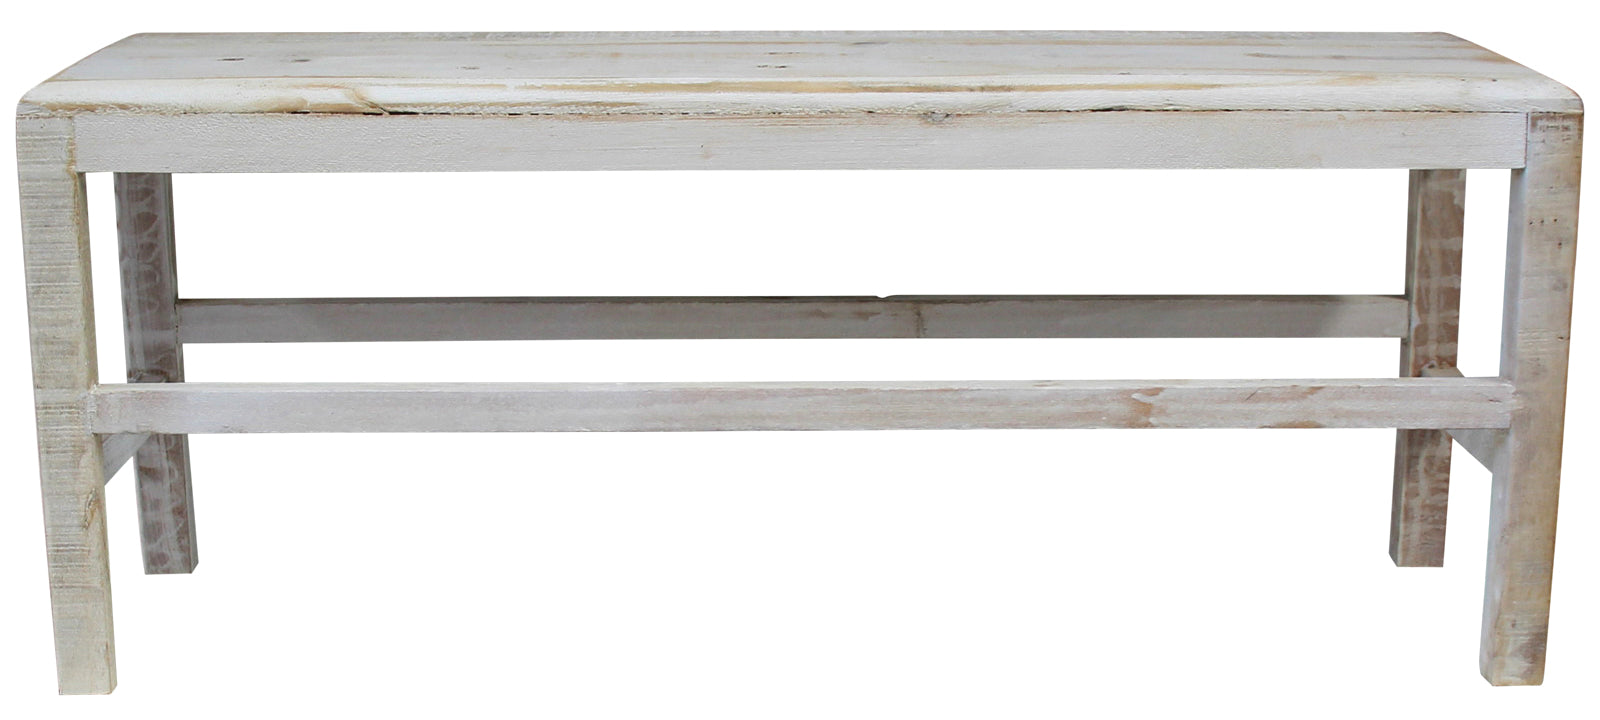 Bench Timber Whitewash Large